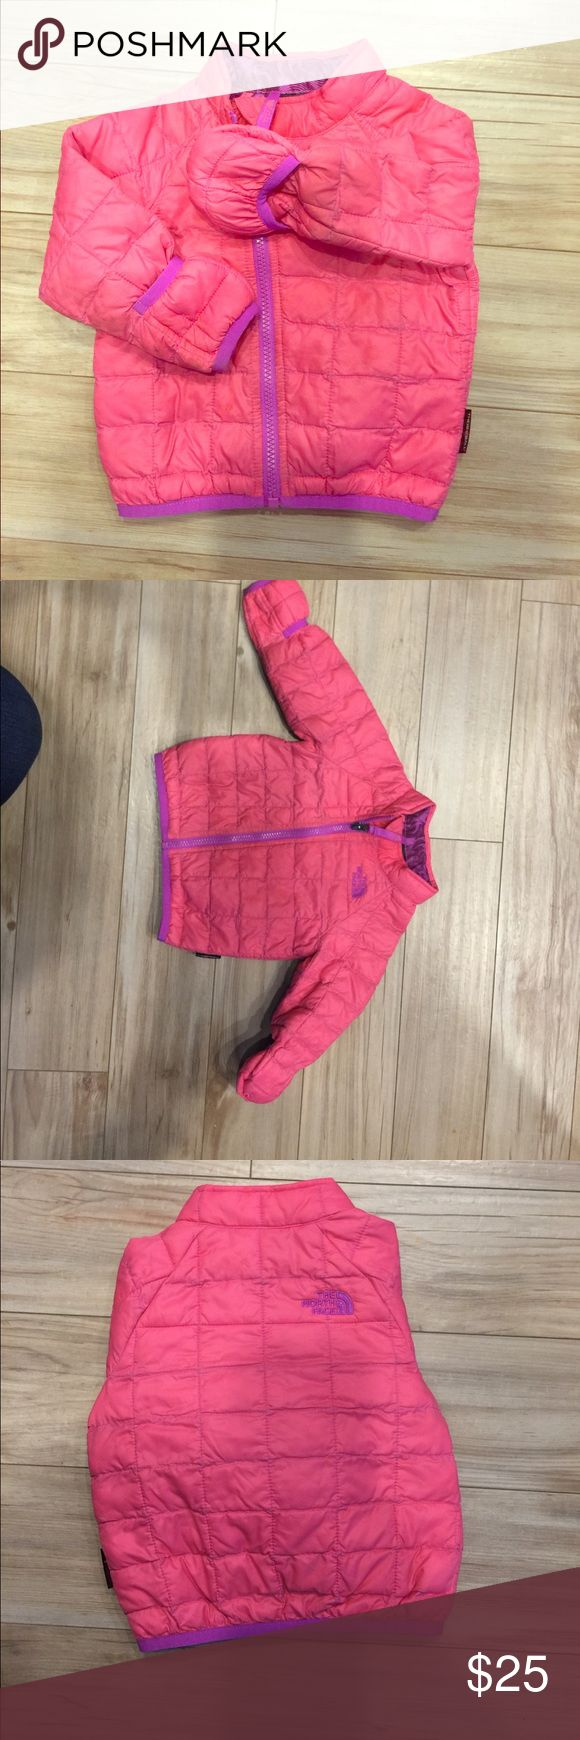 VGUC Toddler North Face Thermoball slim puffer Pink outer with purple stitching and purple interior. Slim puffer keeps your toddler warm, but feasible for car seat use. 6-12mo. The North Face Jackets & Coats Puffers